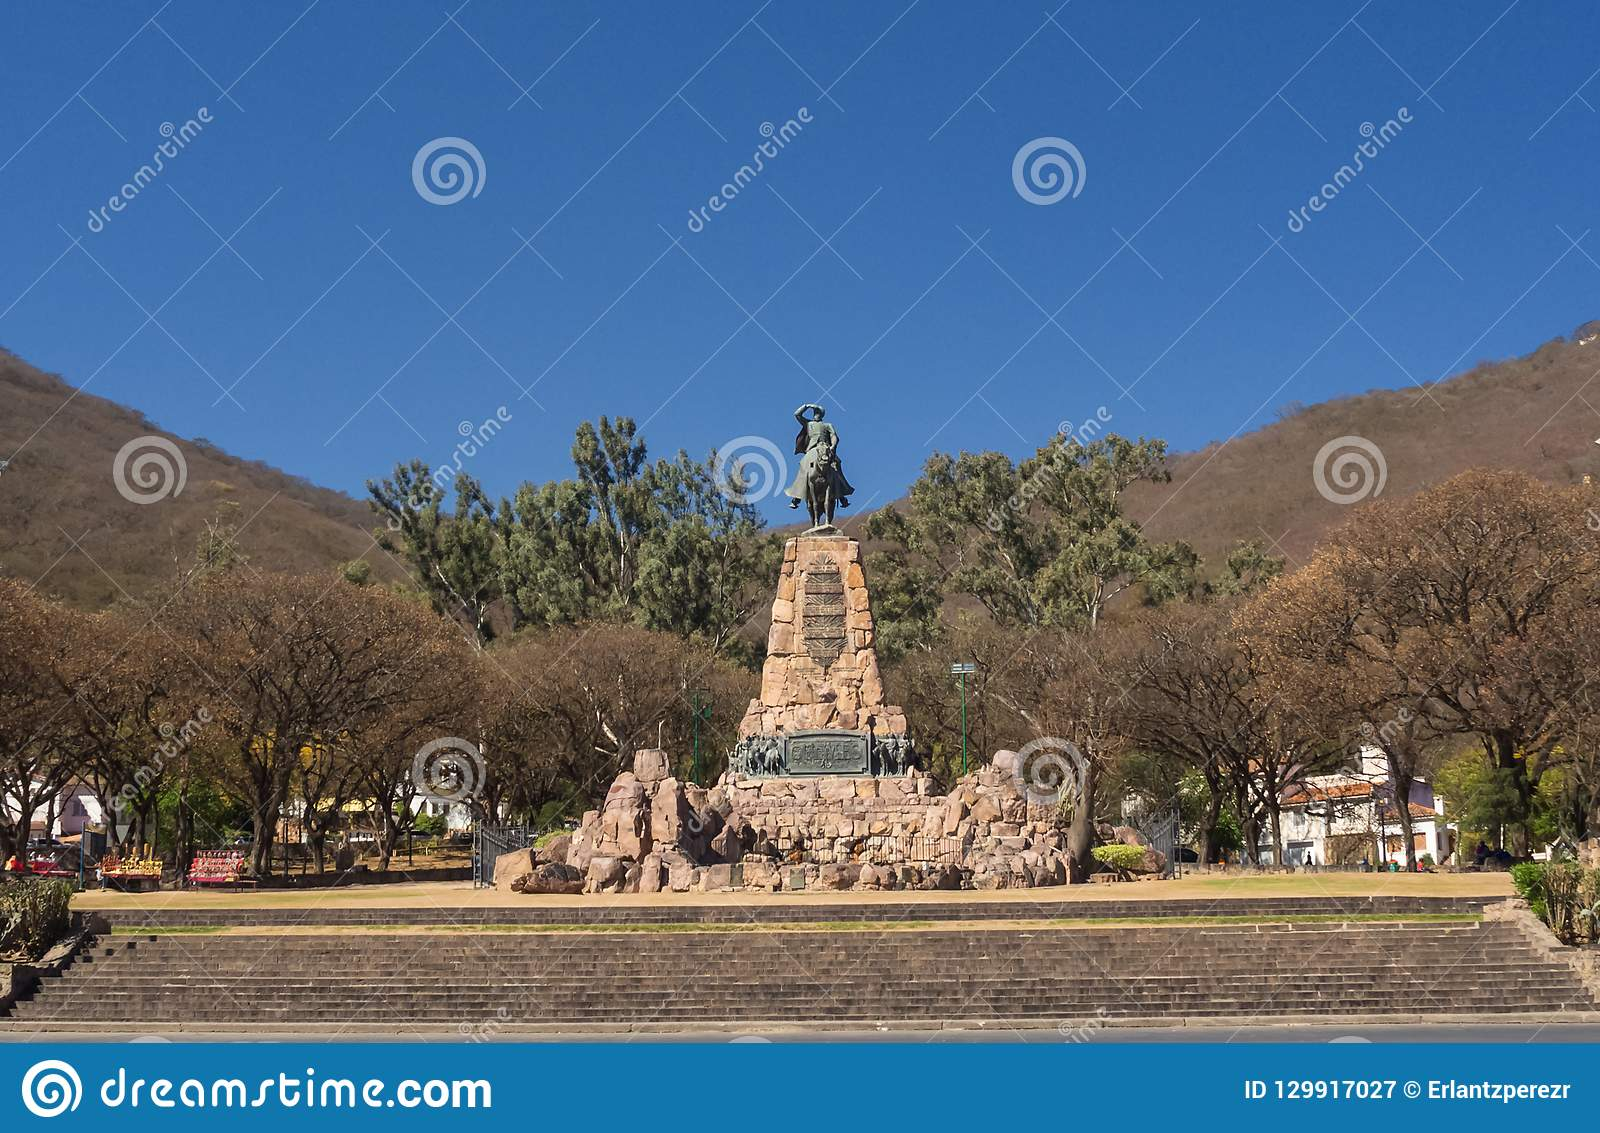 Monument to Martin Miguel de Guemes, a military leader and caudillo in Argentina